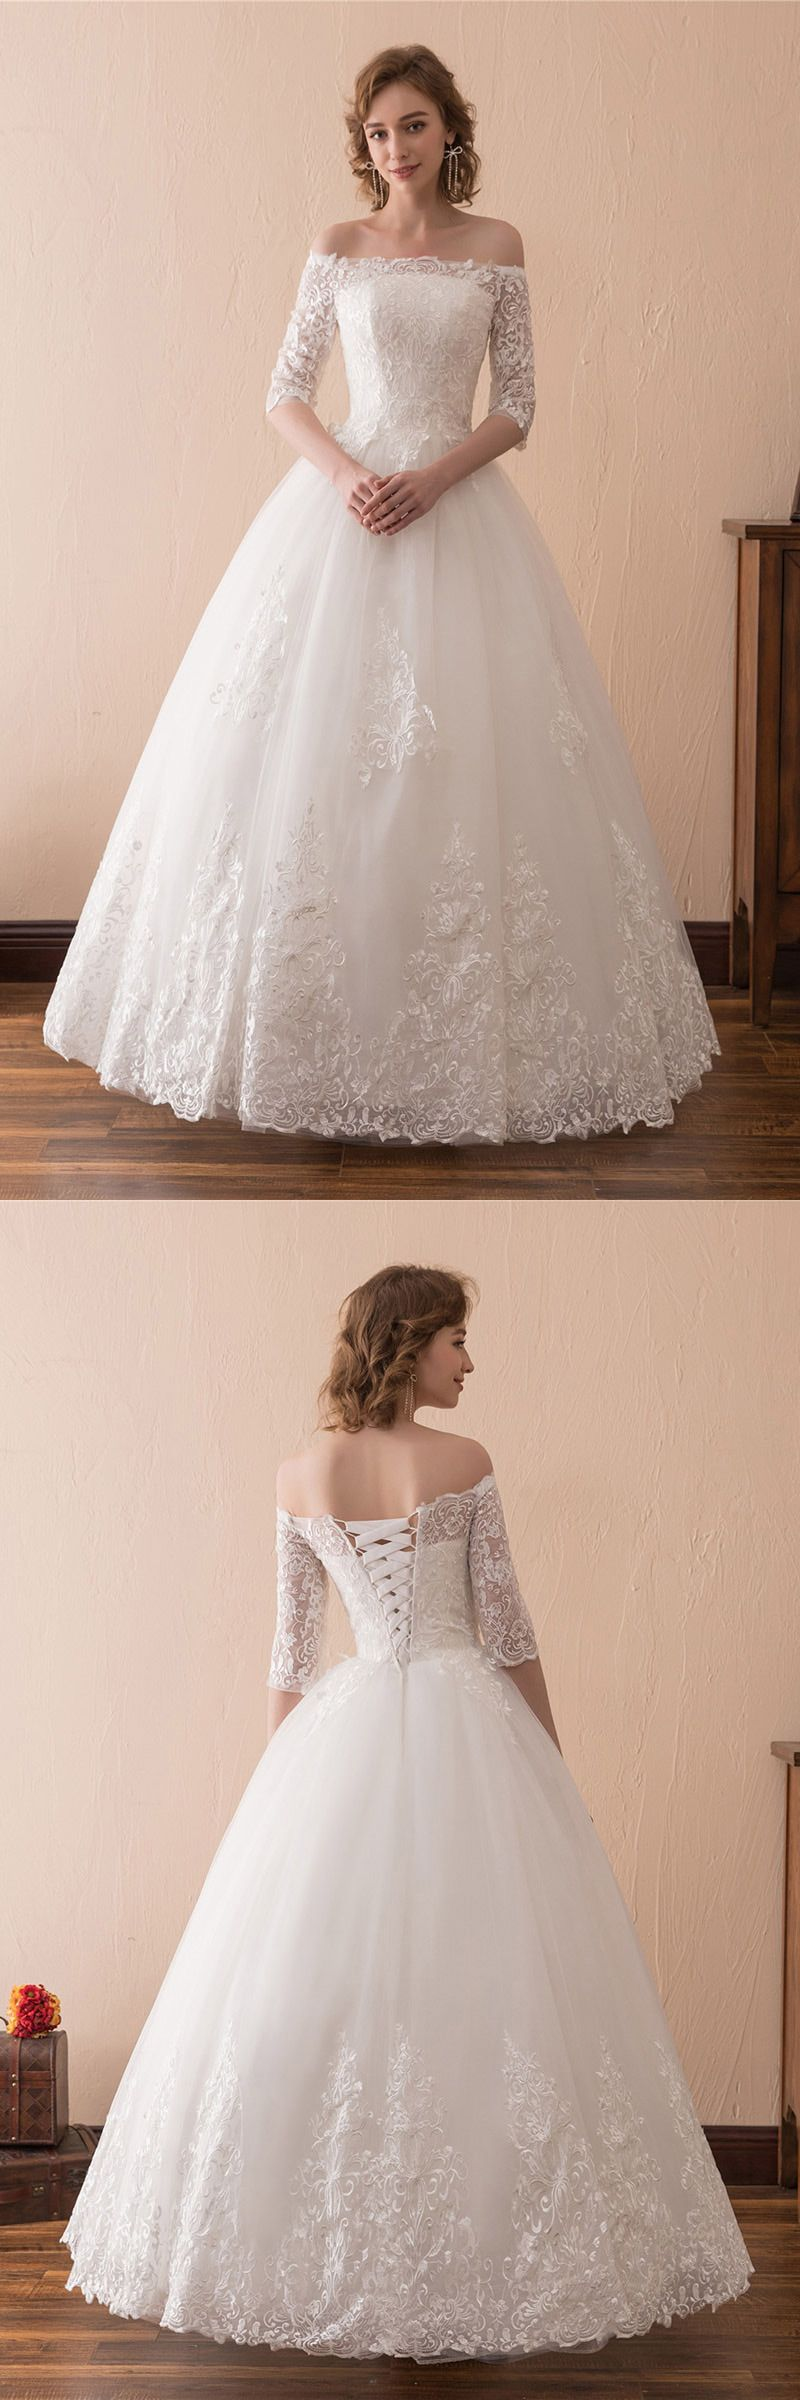 Off The Shoulder Lace Ballroom Wedding Dress With 1/2 Sleeves ...